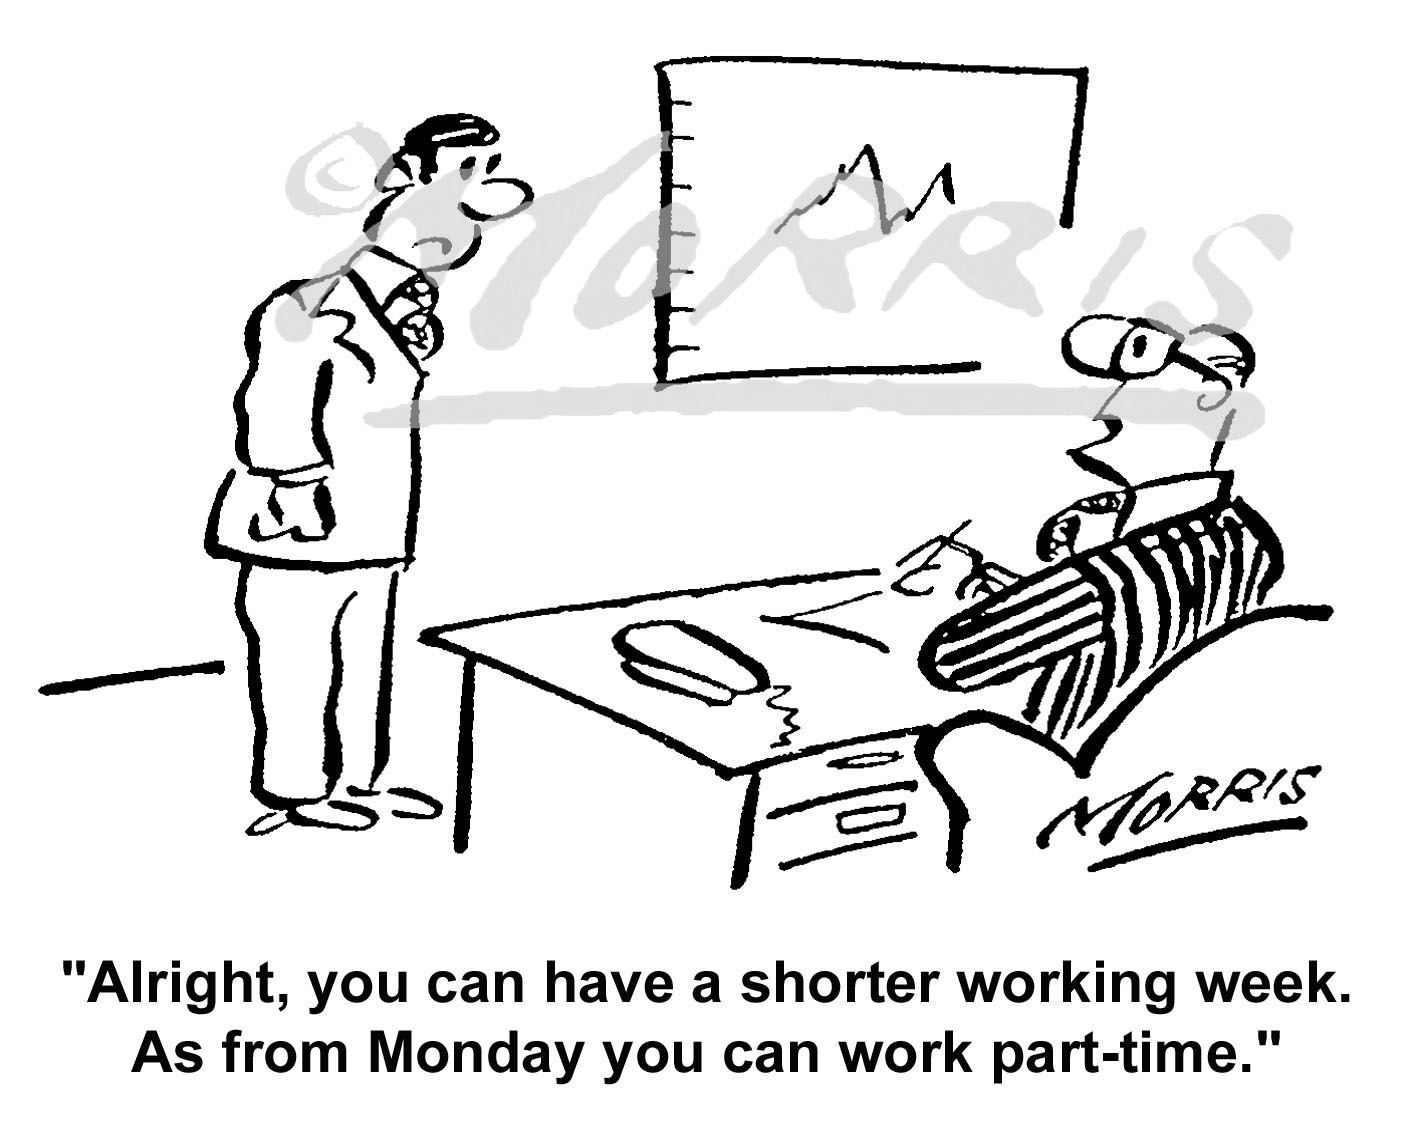 Shorter working week cartoon, reduced hours comic cartoon – Ref: 5142bw